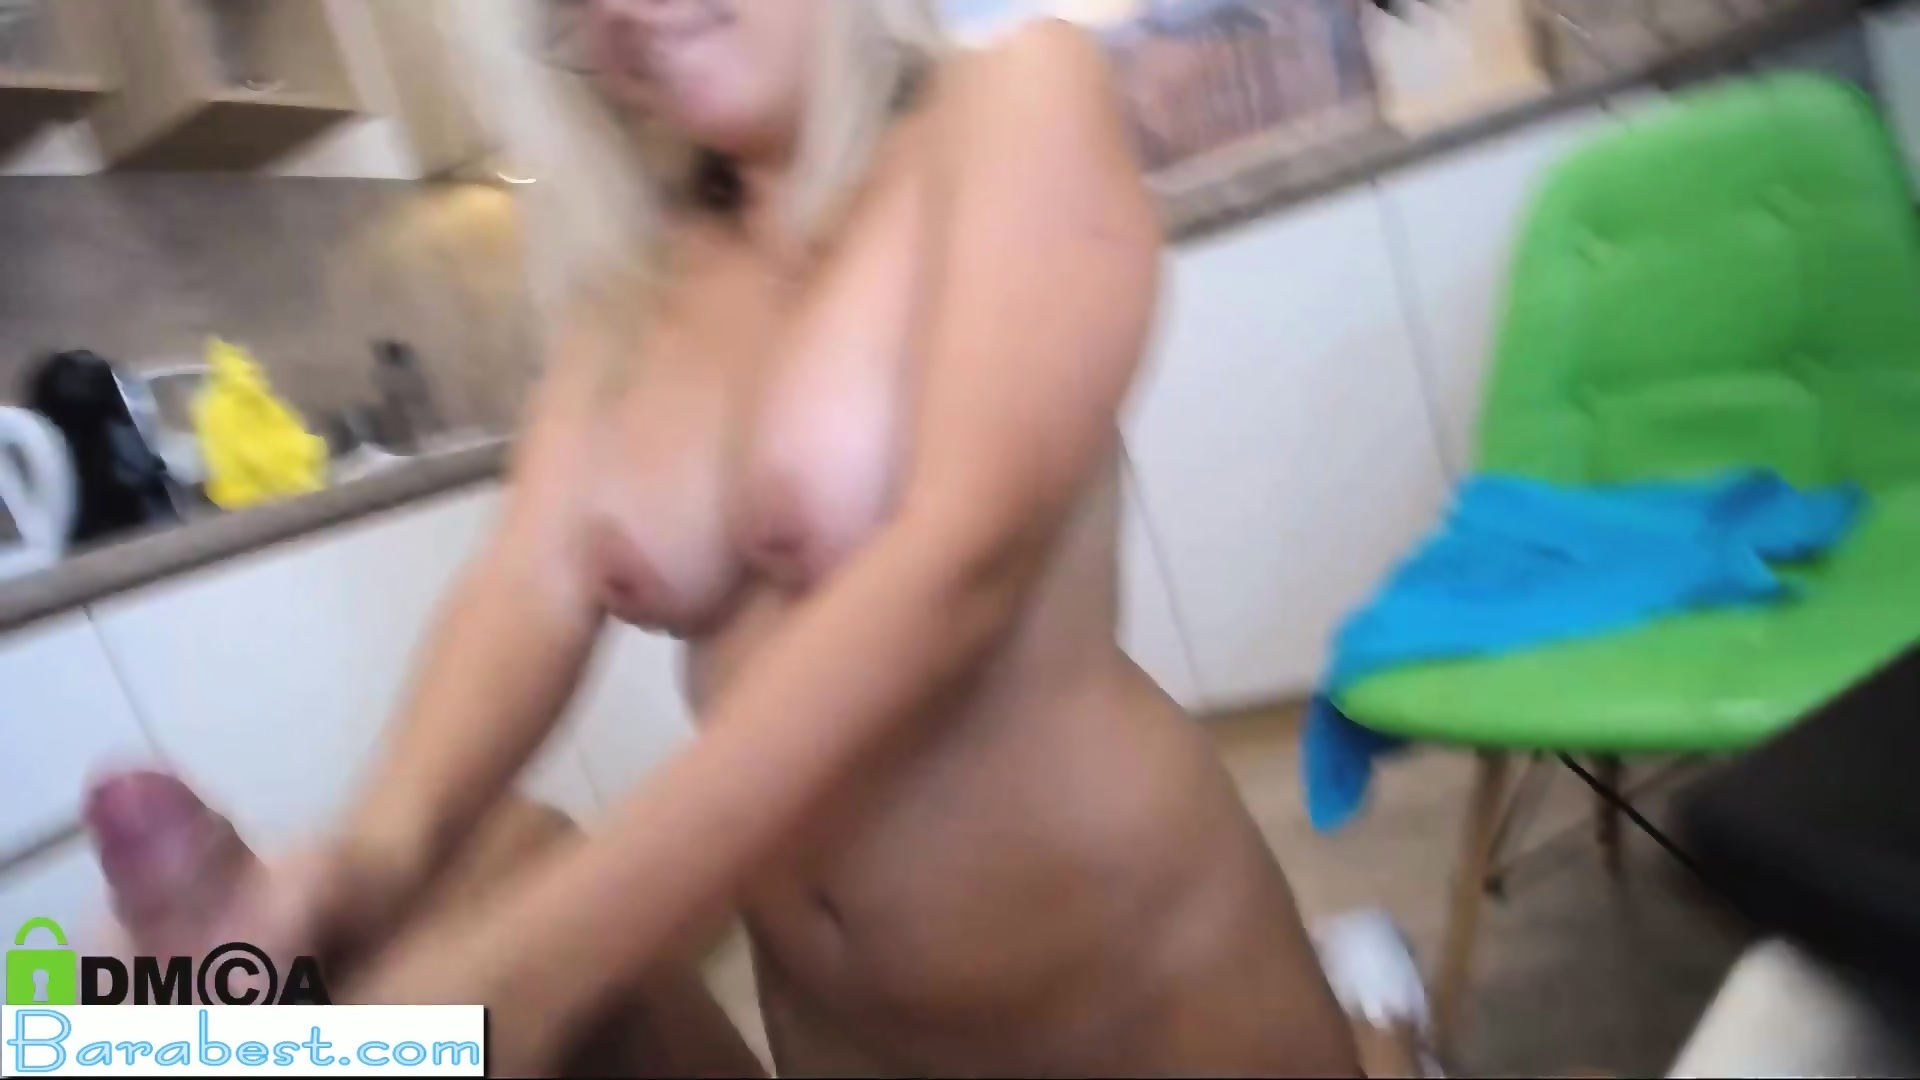 consider, princess shaking tits on her adult cam at trylivecamcom knows it. seems excellent